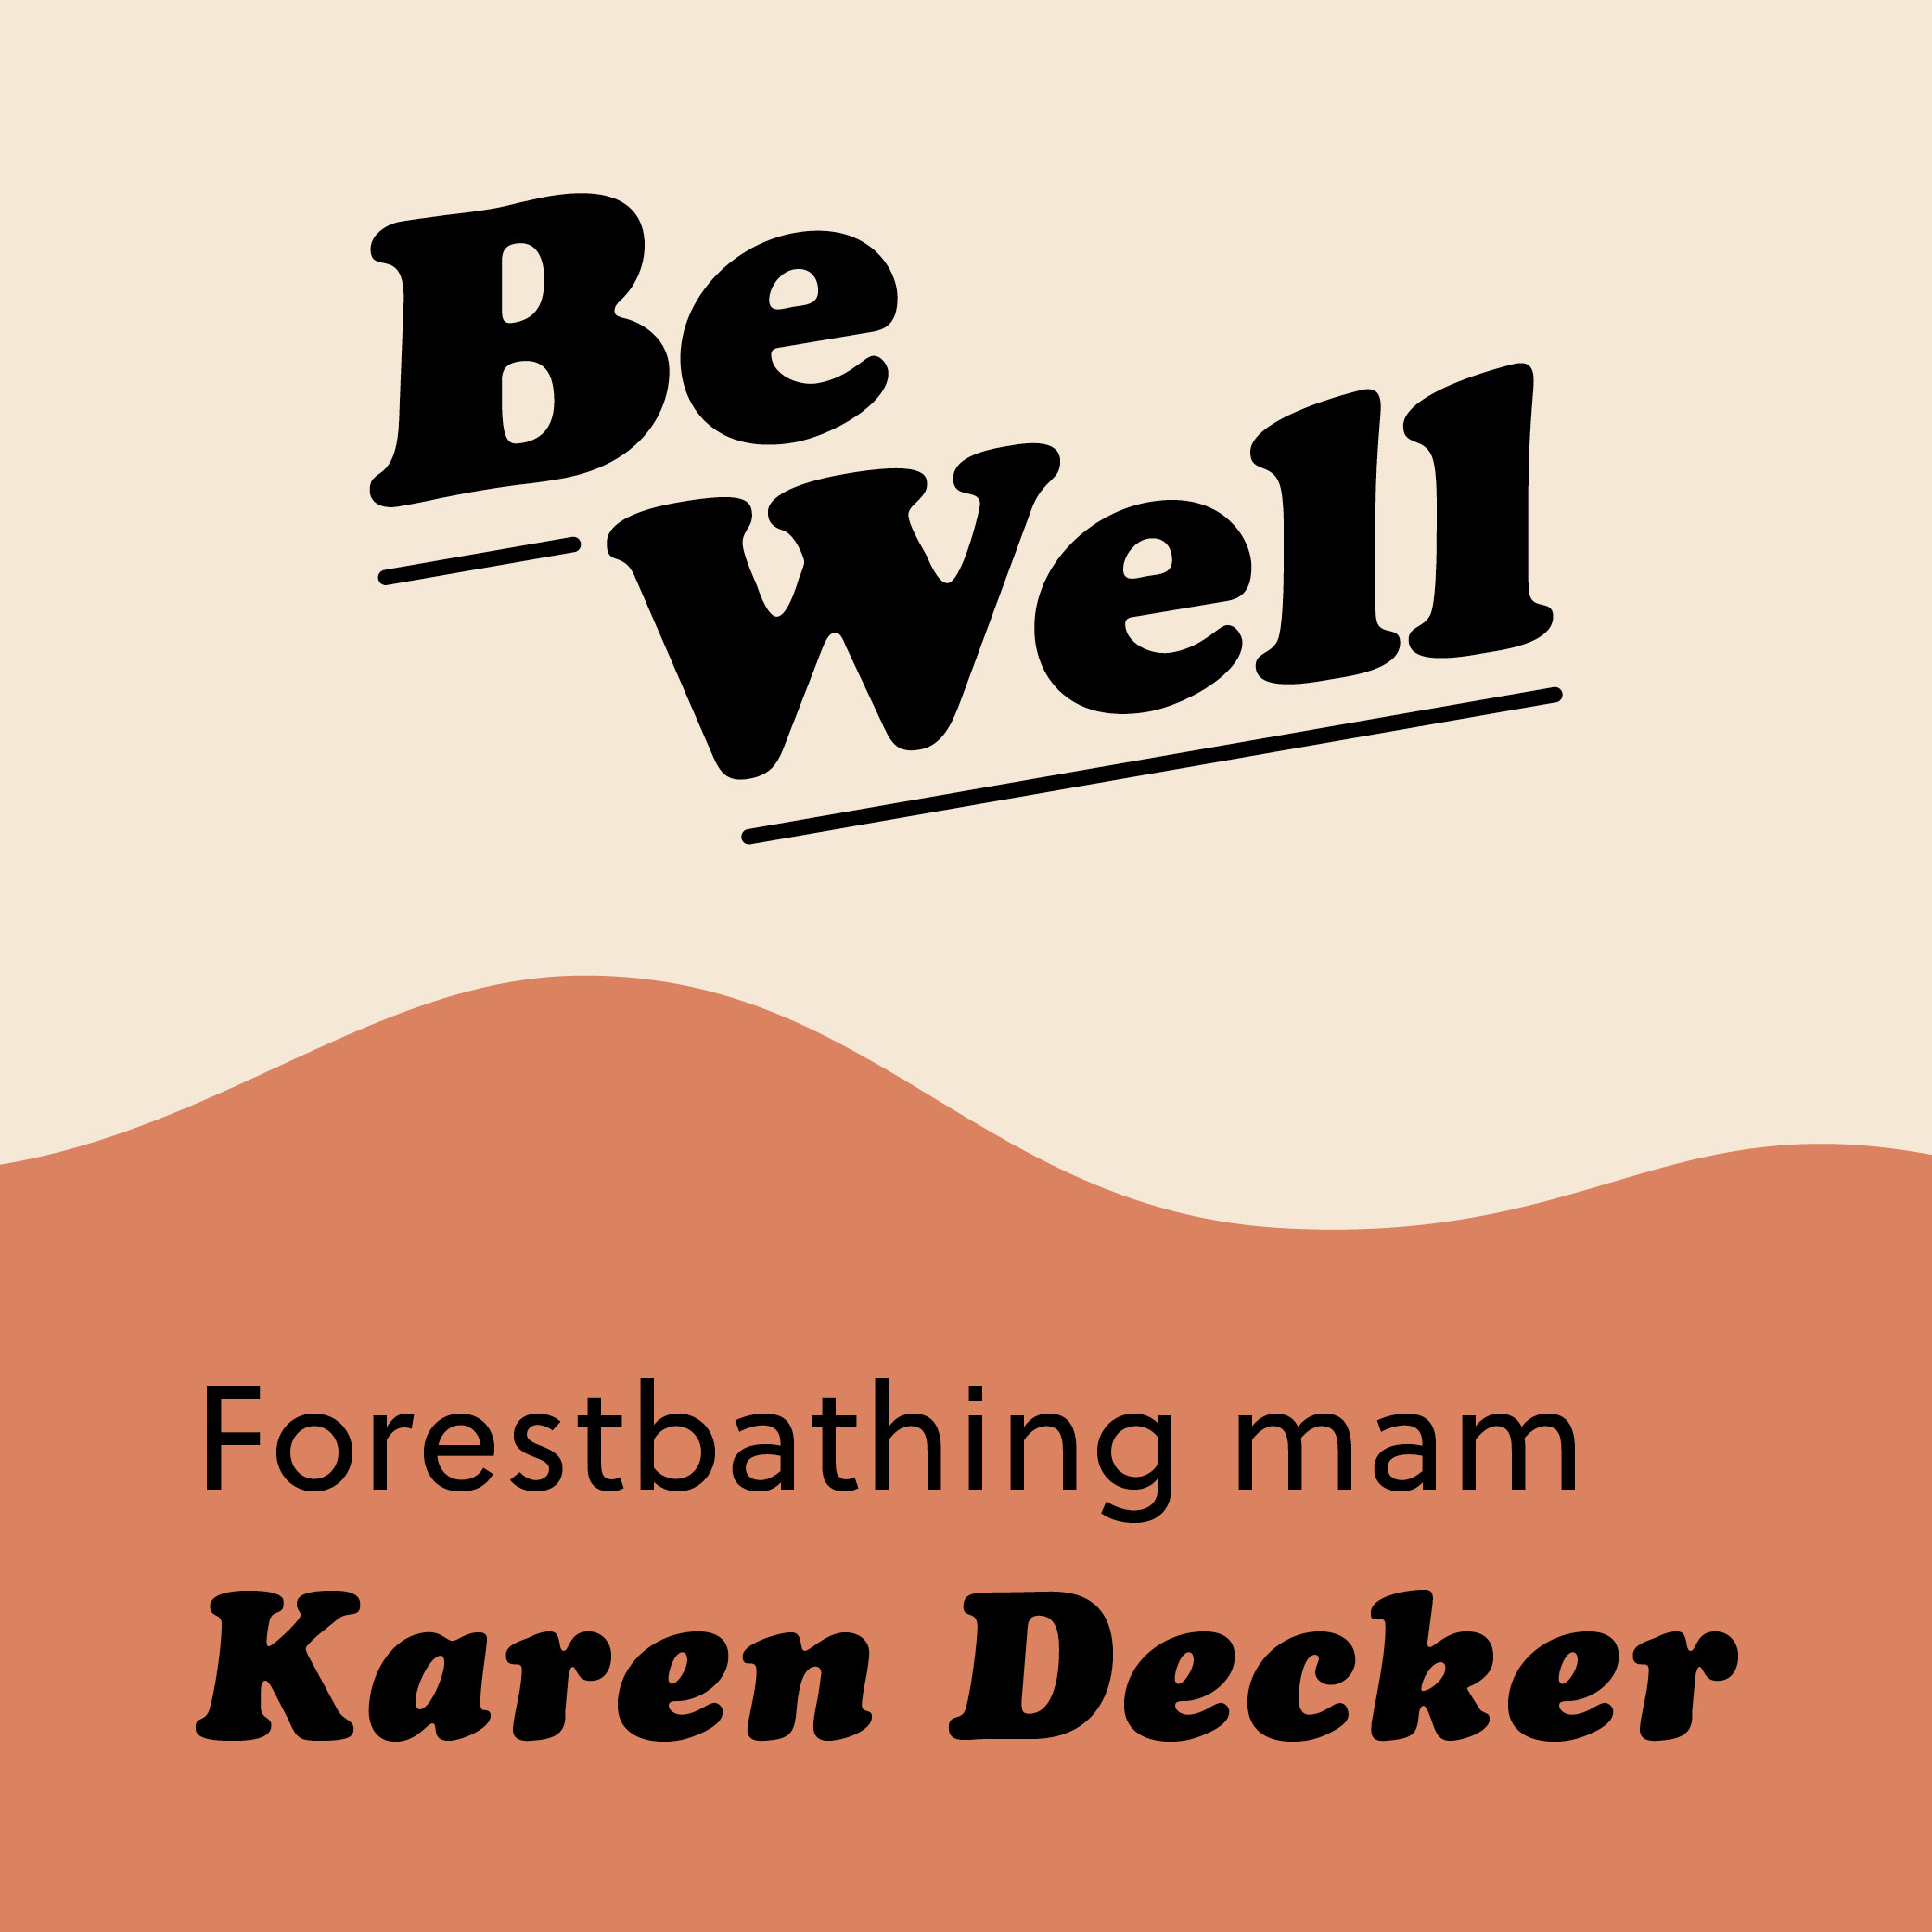 Episode 1: Forestbathing